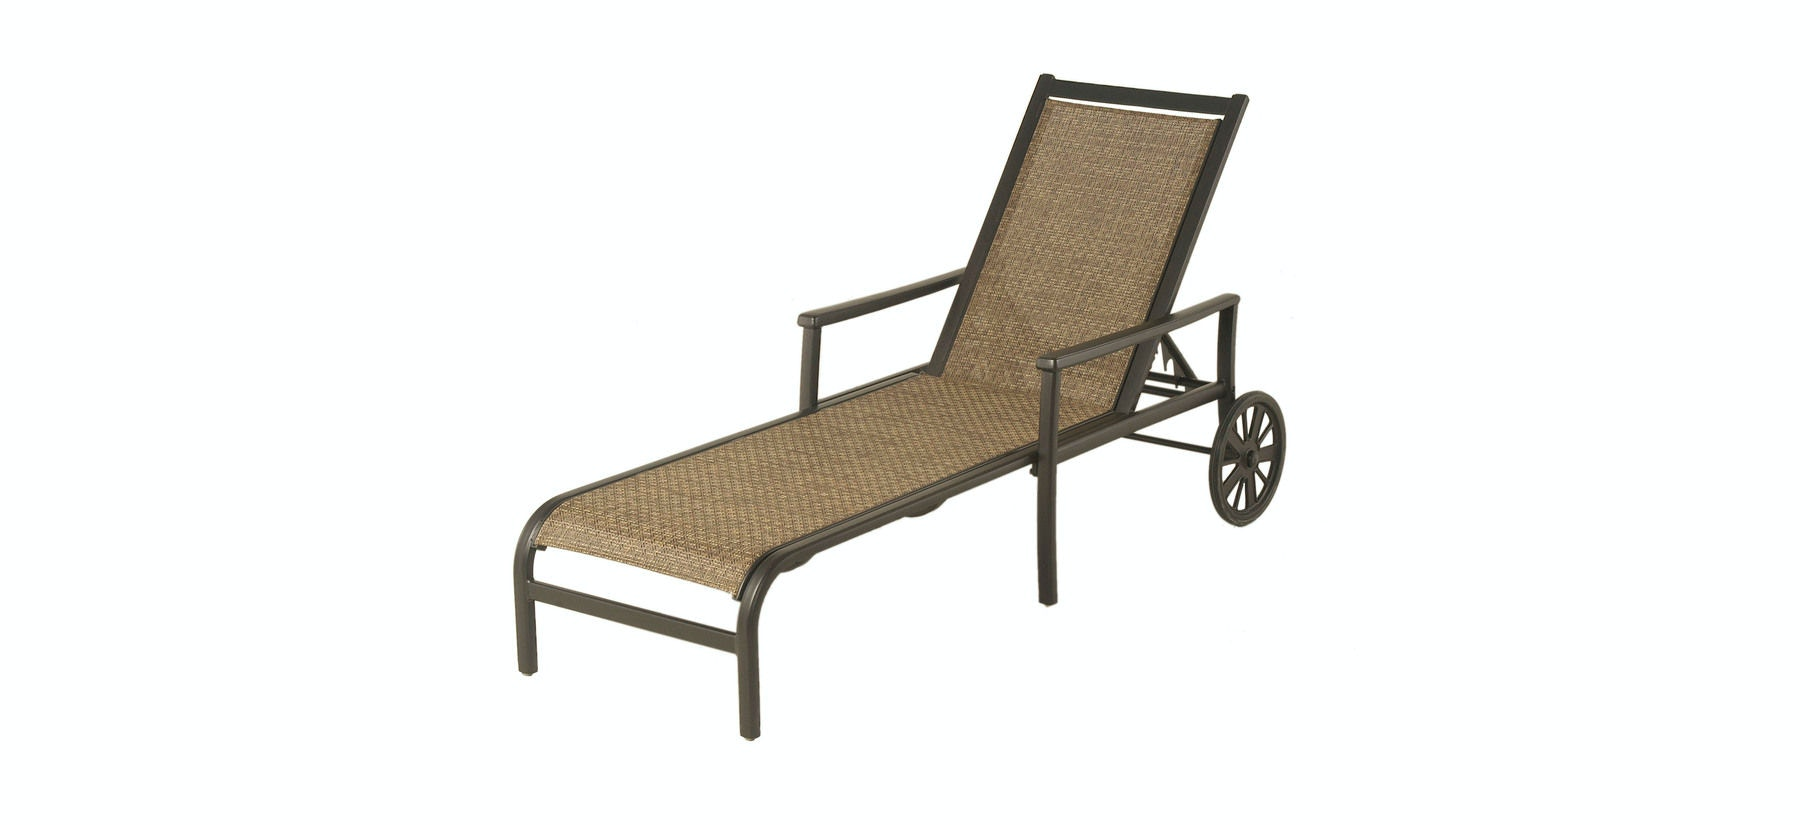 Hanamint Sling Chaise Lounge By Hanamint